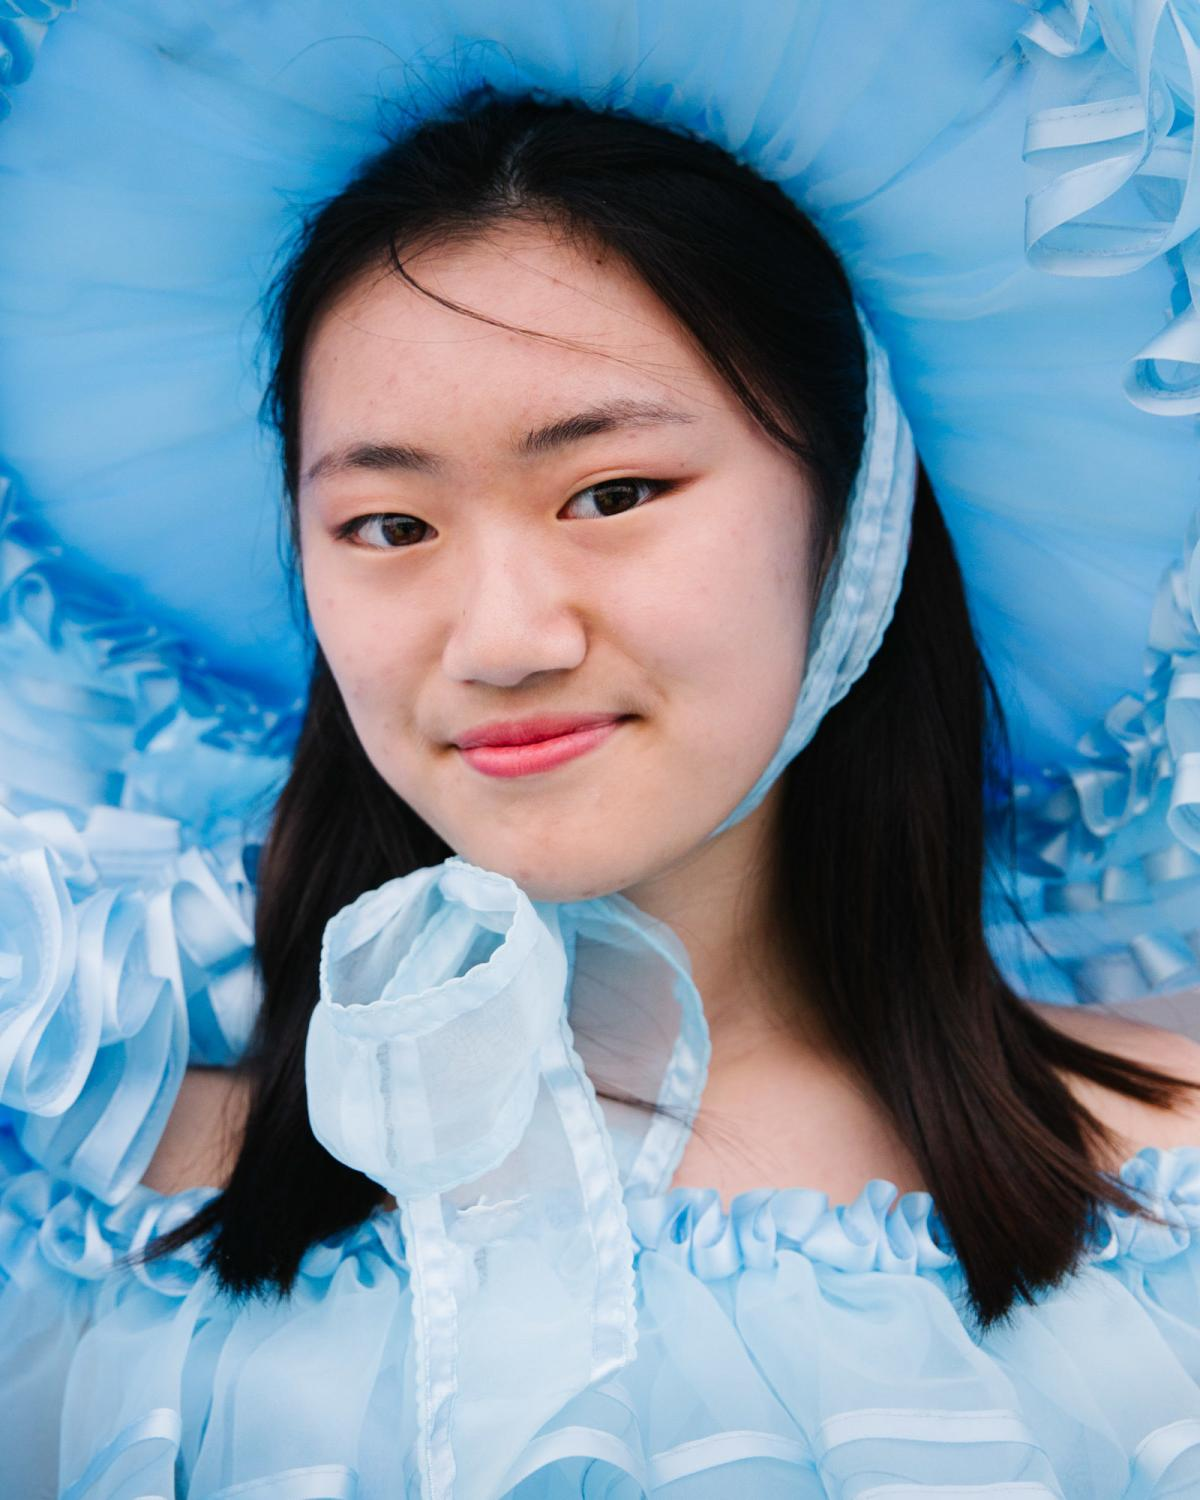 Jamie Lim, now a student at Duke University, was the valedictorian of her high school and is a concert violinist.